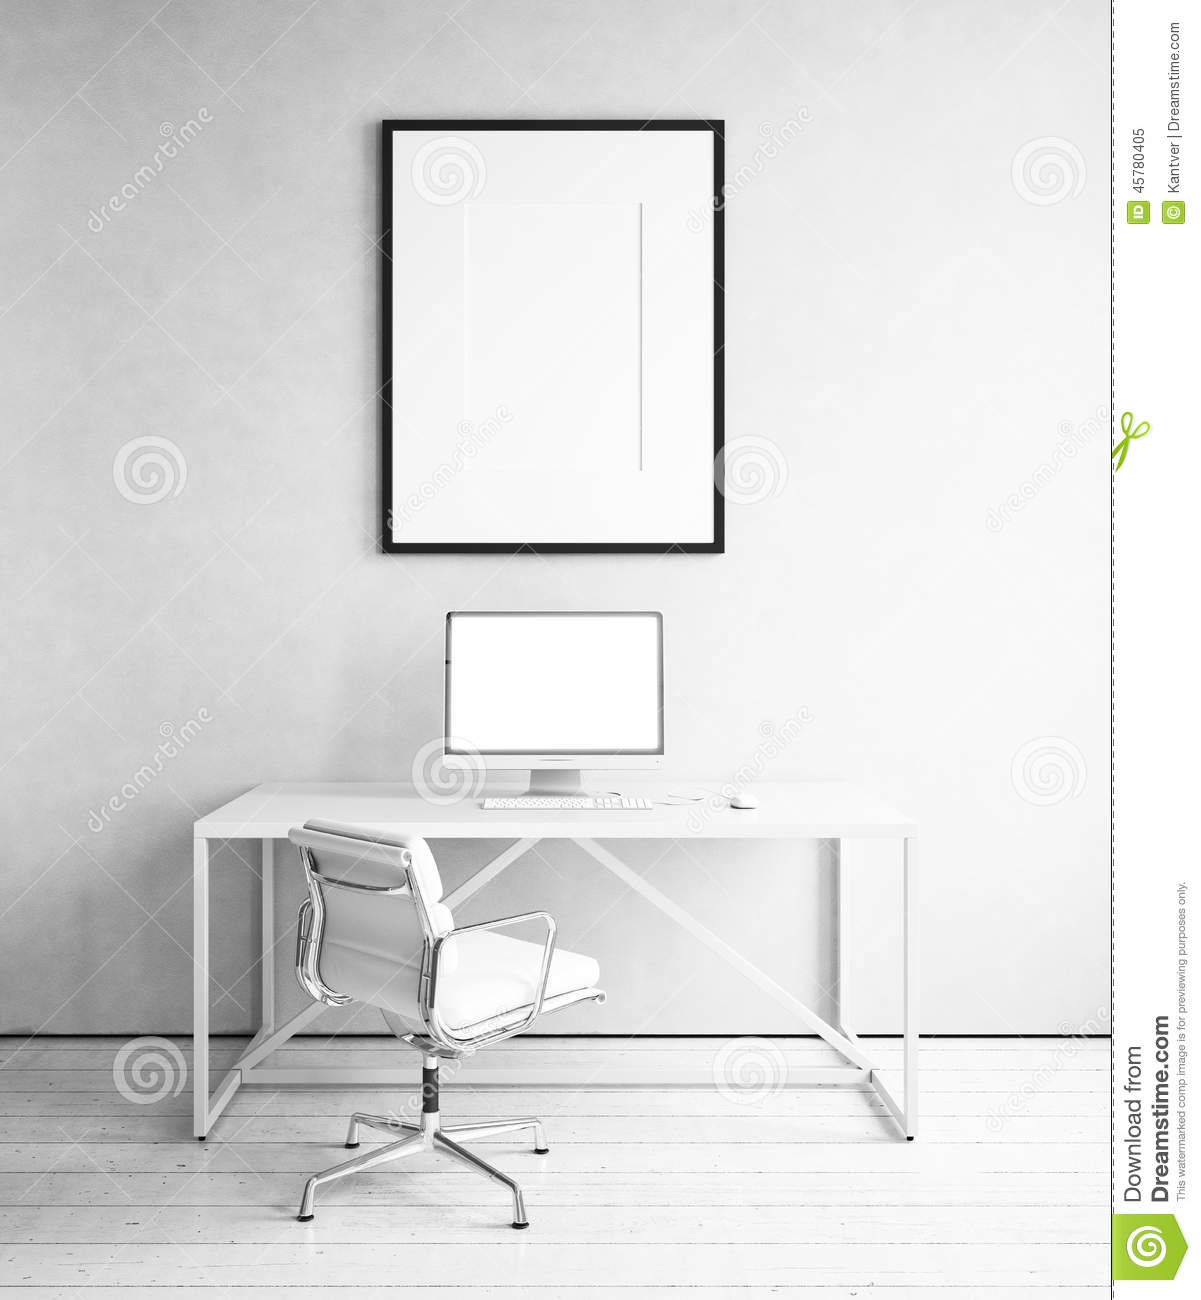 workplace with picture template in white room stock photo image 45780405. Black Bedroom Furniture Sets. Home Design Ideas